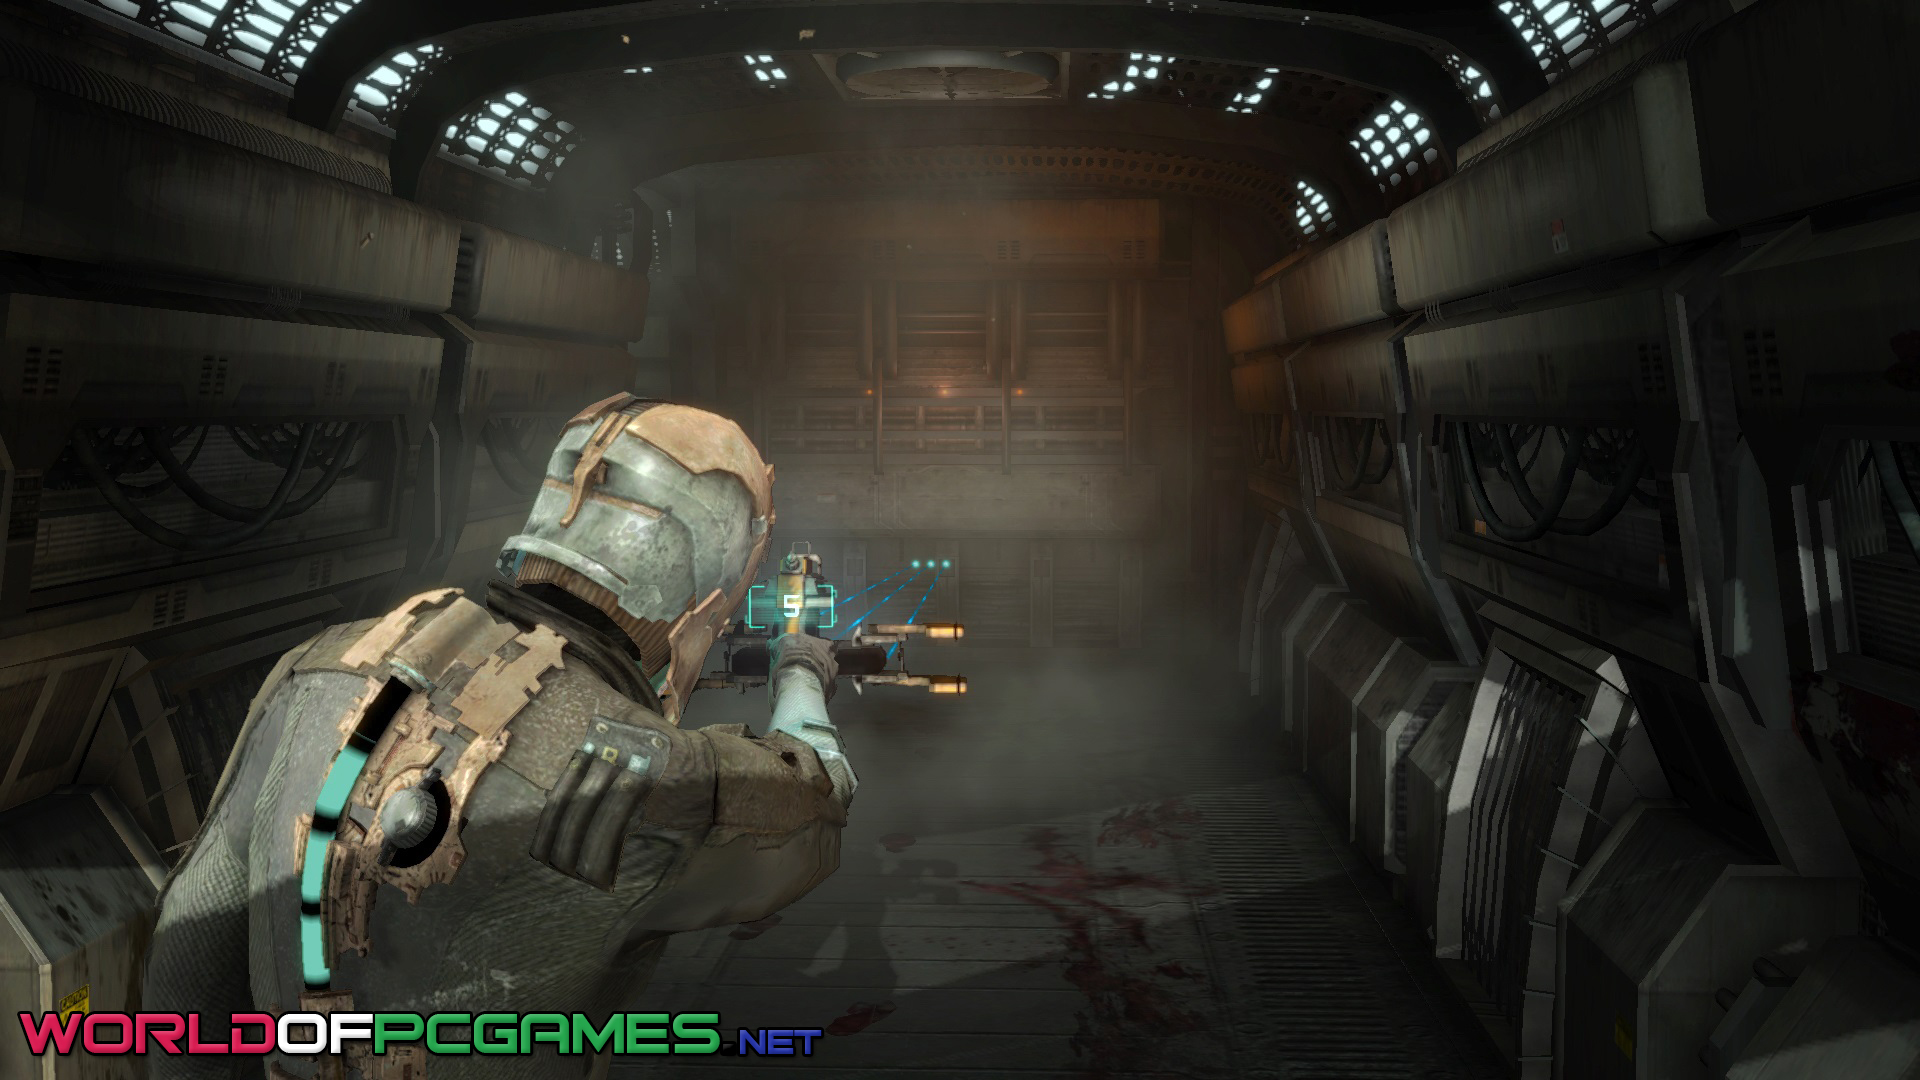 dead space 1 Free Download By Worldofpcgames.net